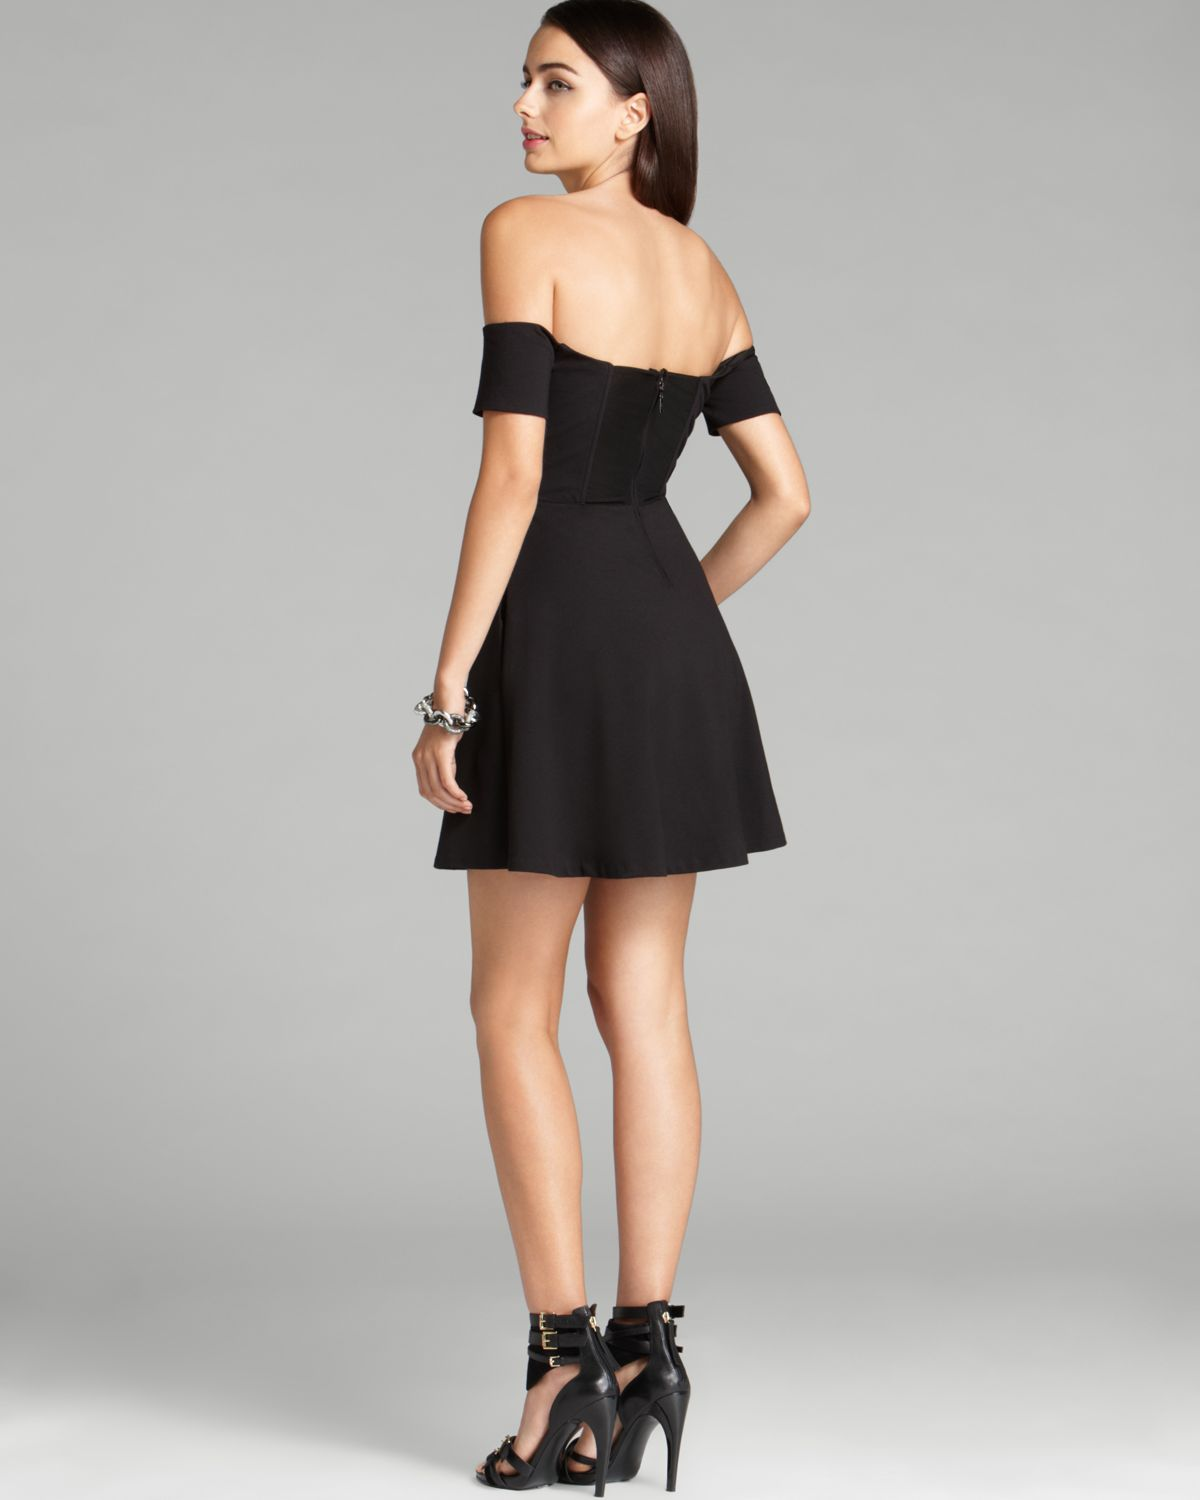 Lyst Guess Dress Off Shoulder Fit And Flare In Black